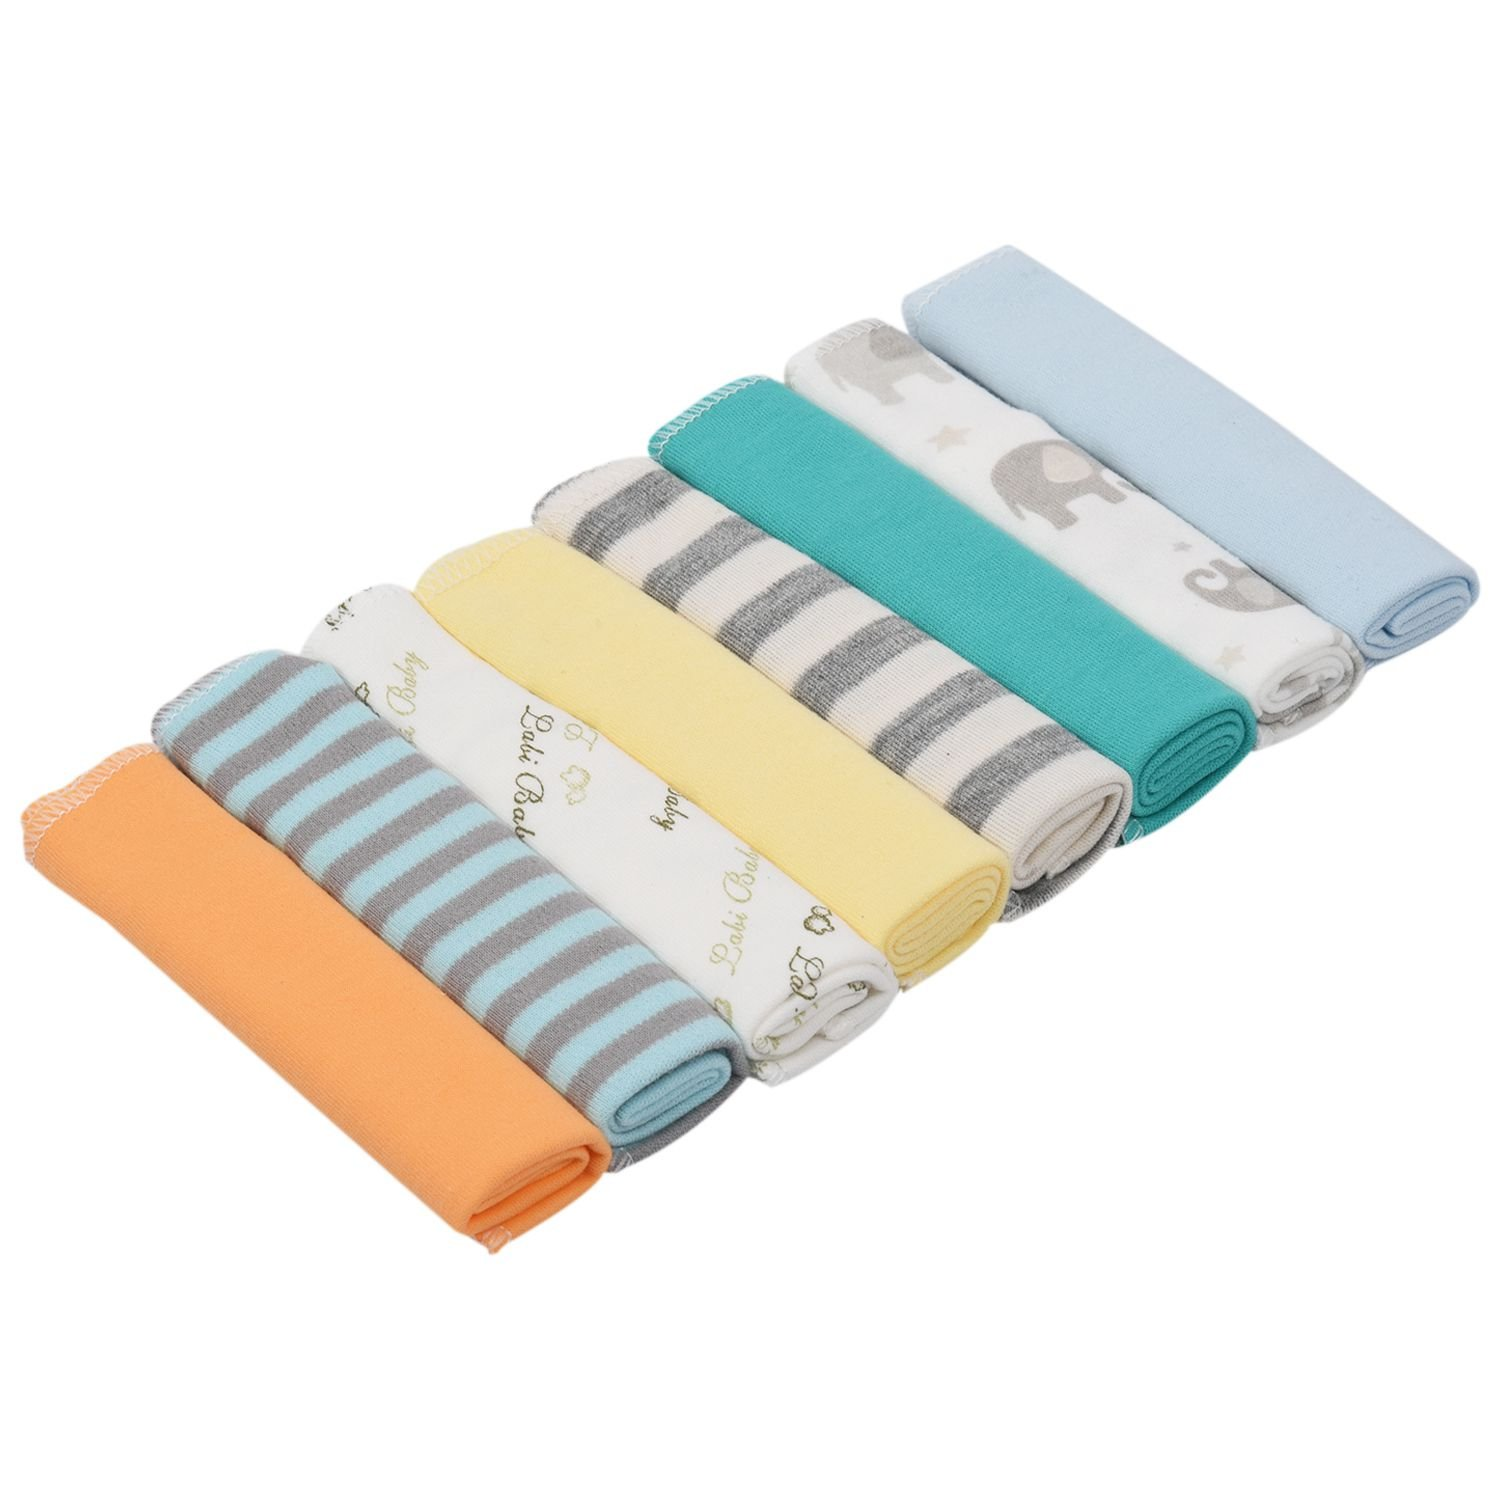 SODIAL(R) 8pcs/pack 100% Cotton Newborn Baby Towels Saliva Towel Nursing Towel Baby Boys Girls Towel Washcloth Handkerchief KF011 (mixed)21x21cm #1